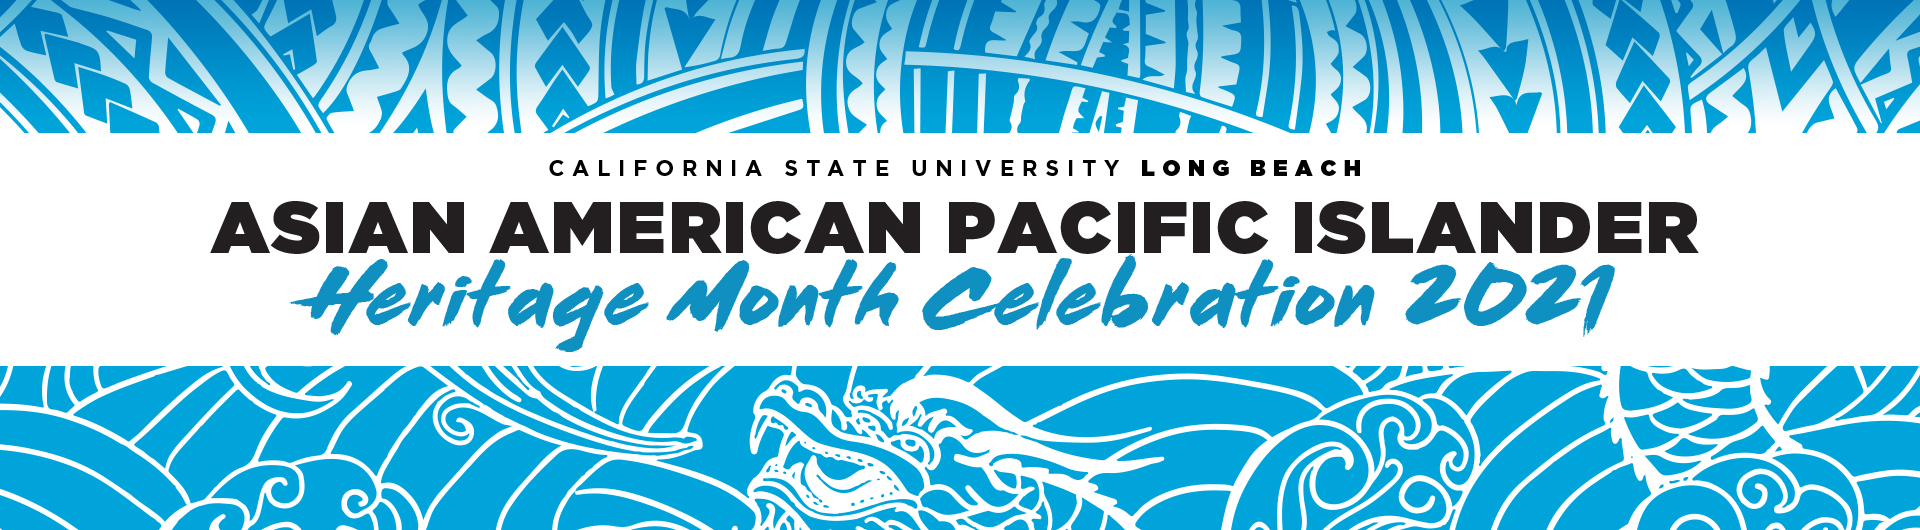 Native American Pacific Islander Heritage Month Celebration 2021